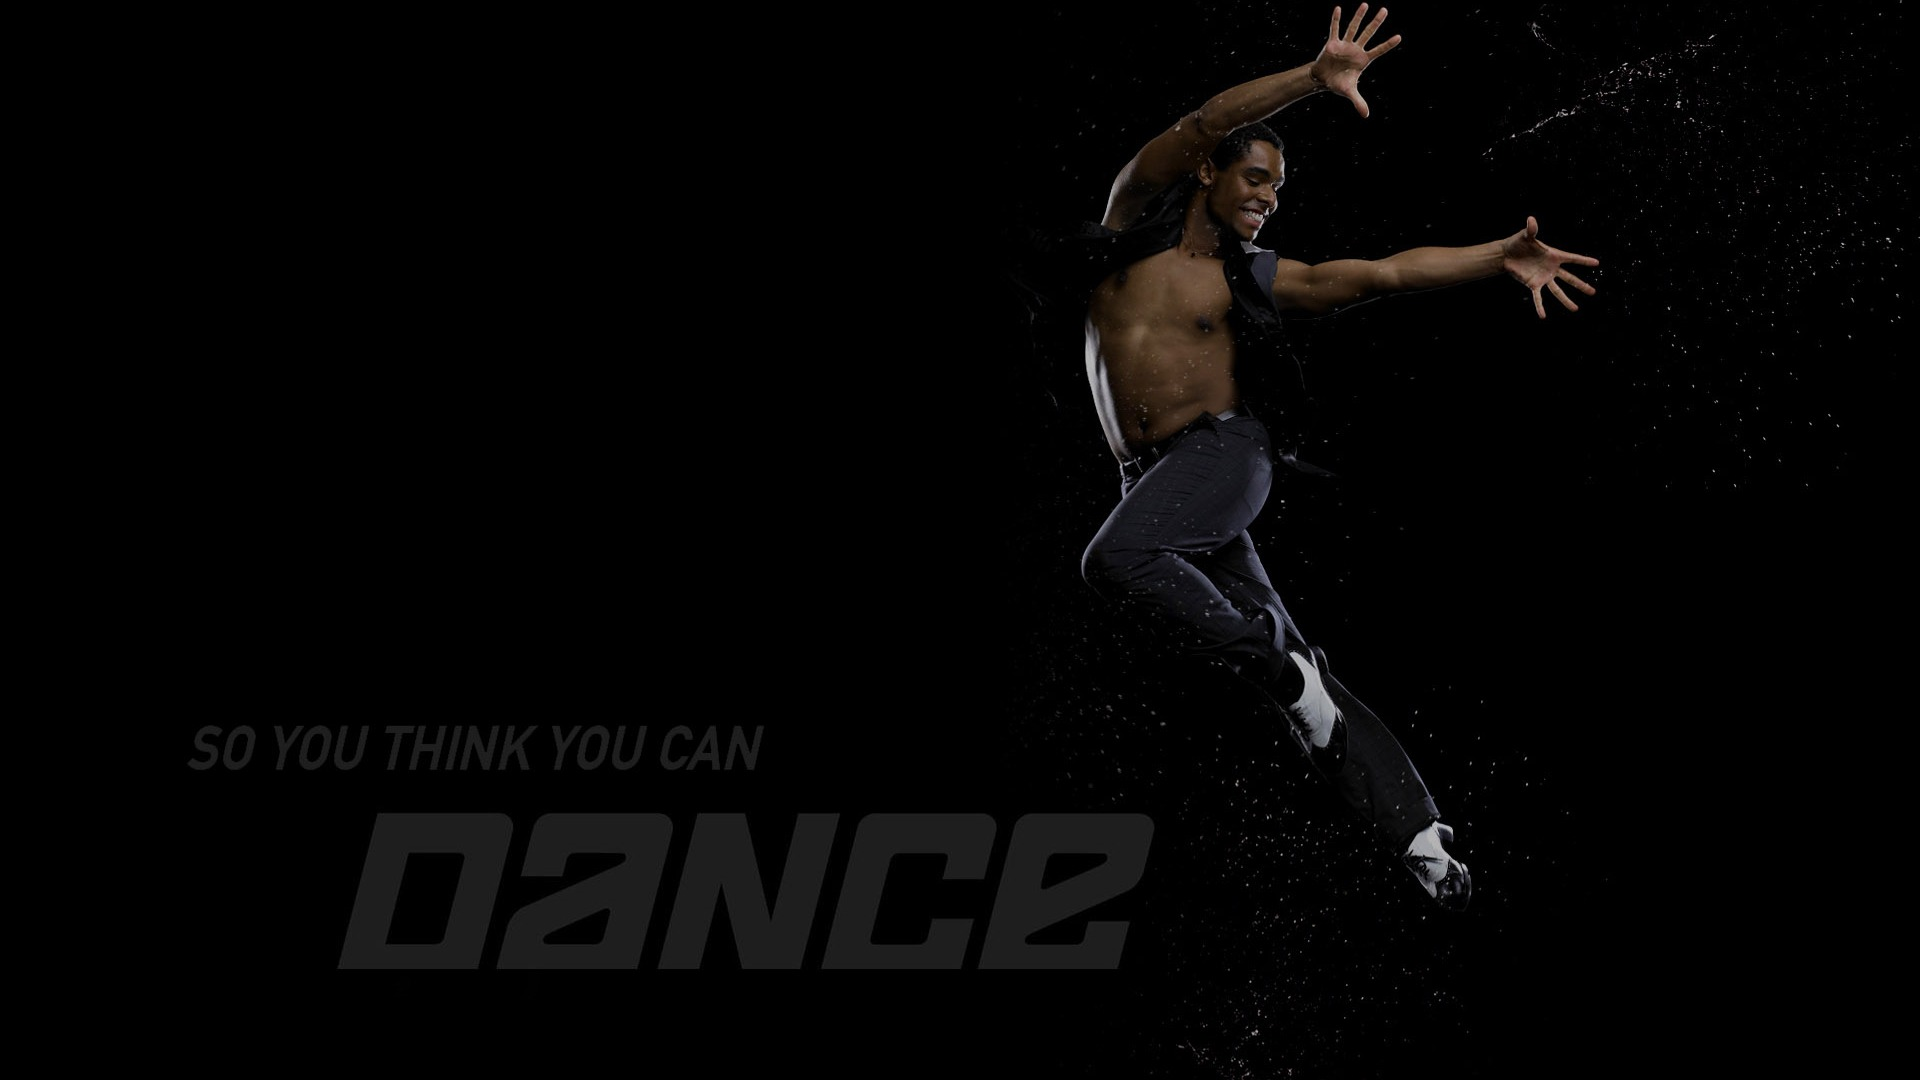 So You Think Can Dance Wallpaper 2 20